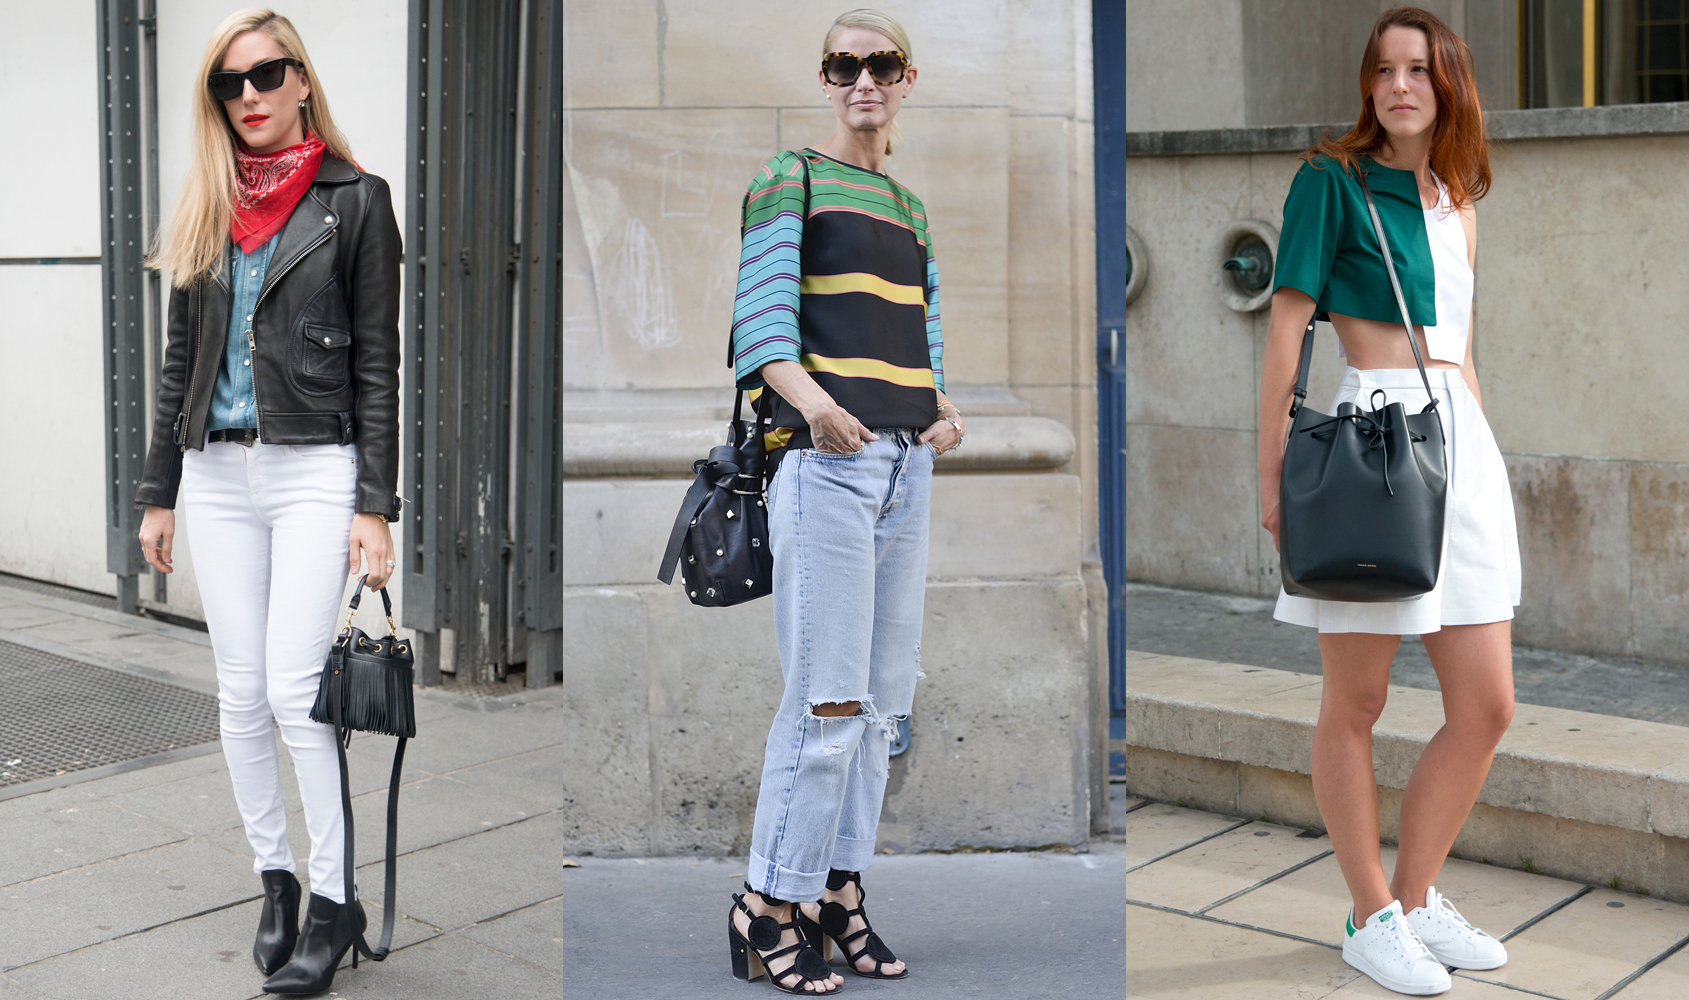 A couple of years ago, the bucket bag arrived on the scene at the hips of street stylers and cool girls alike, and quickly became the 'It' bag it was never trying to be. Thanks to equal parts weekend-perfect versatility and office-approps polish, it's now a solid fashion fixture. Here are the ones to add to your bucket list.